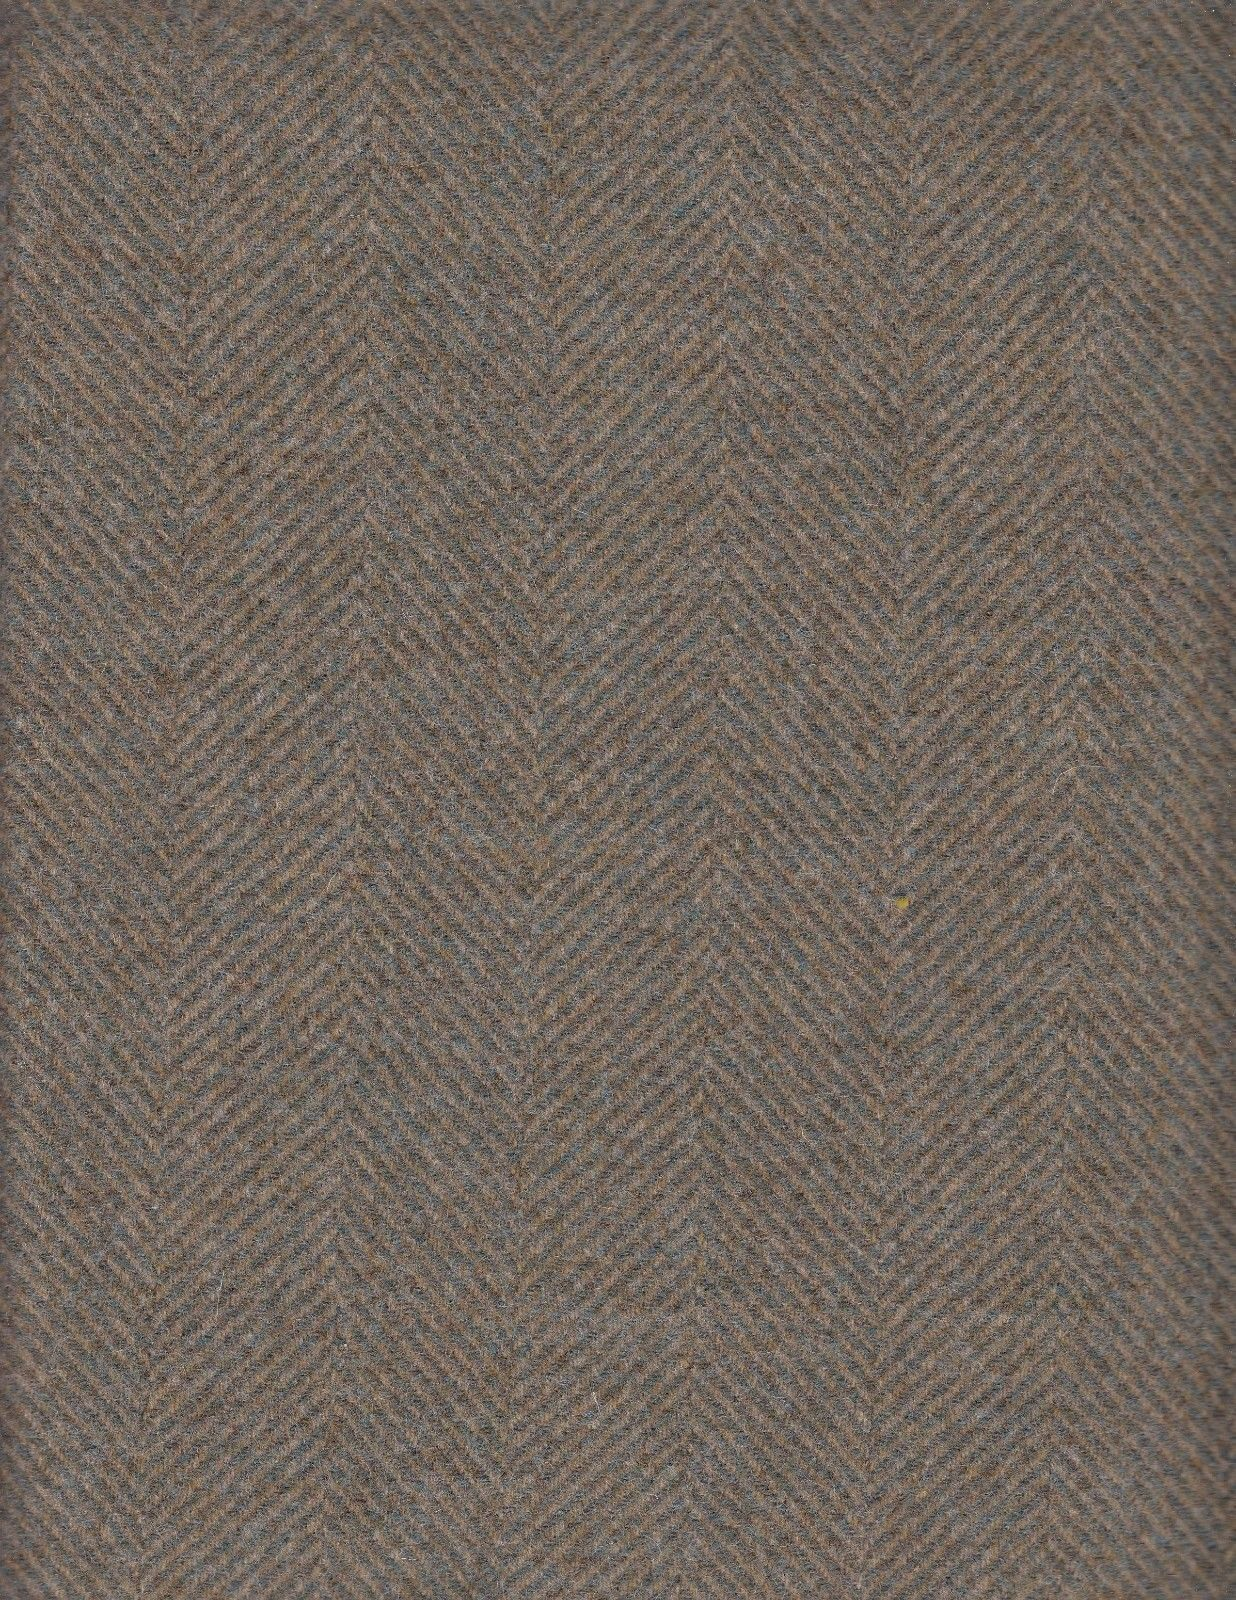 5.75 yards Moore and Sons Upholstery Fabric Herringbone Green GJ6